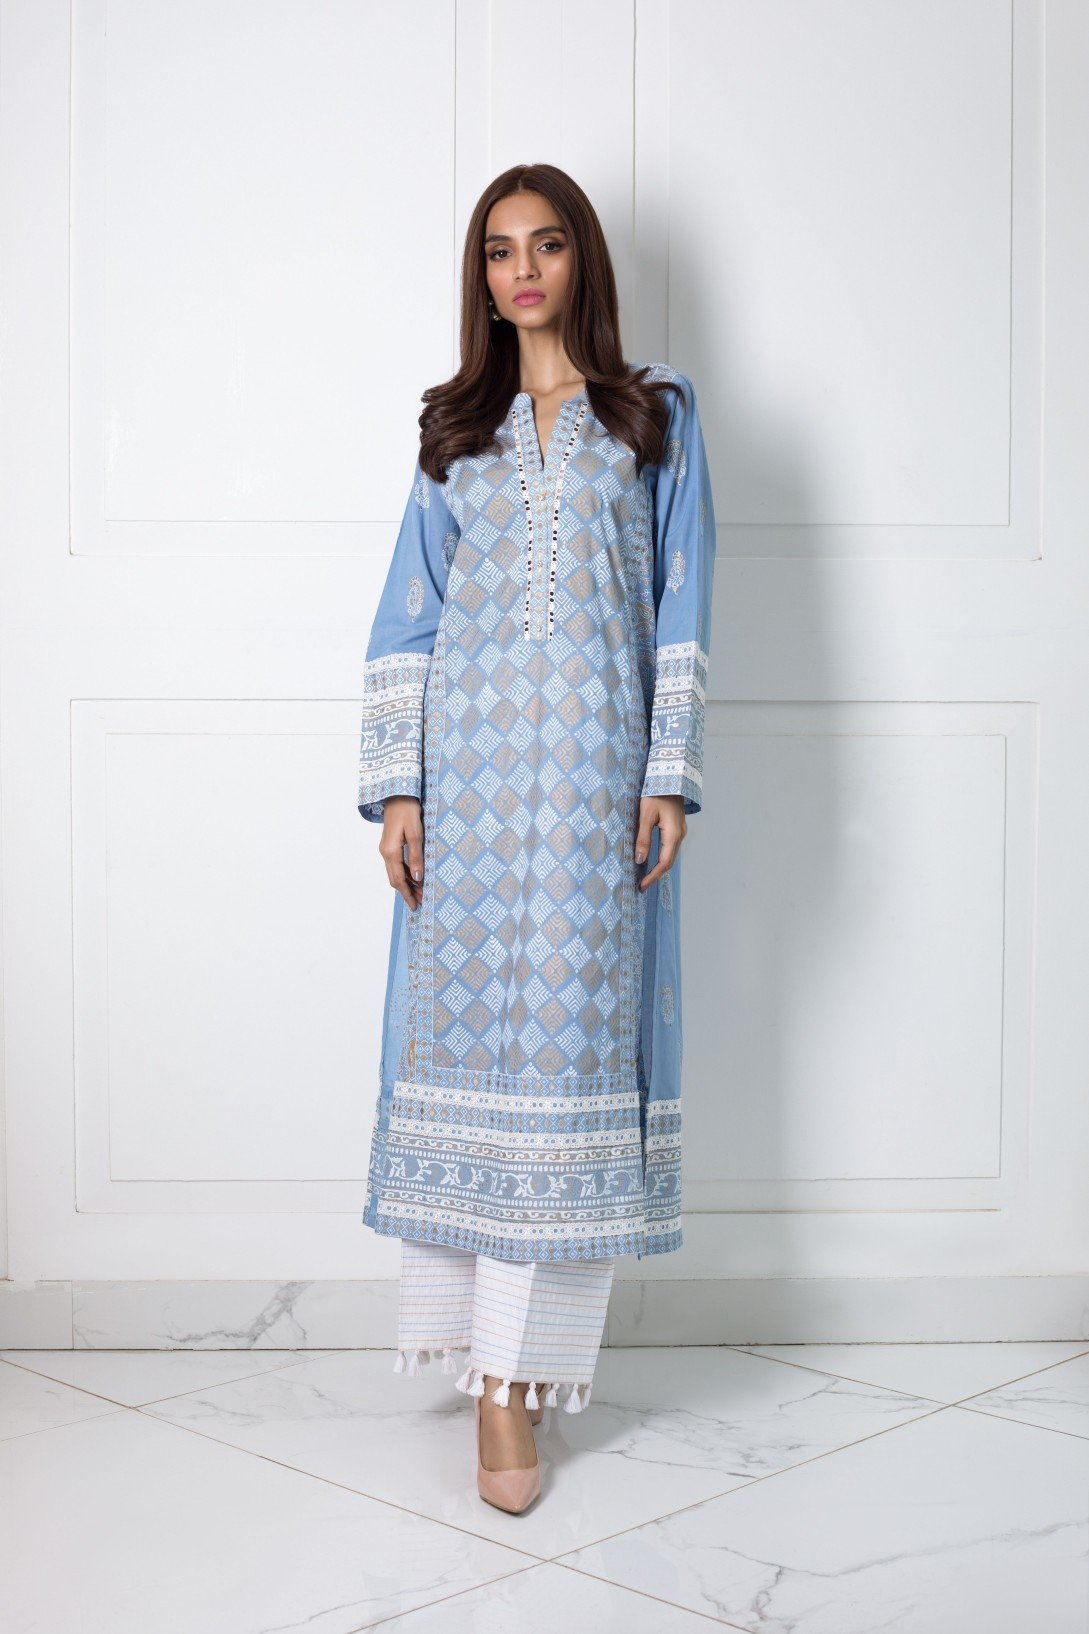 Shehrnaz- -Blue Kurta with White and Gold Blockprint